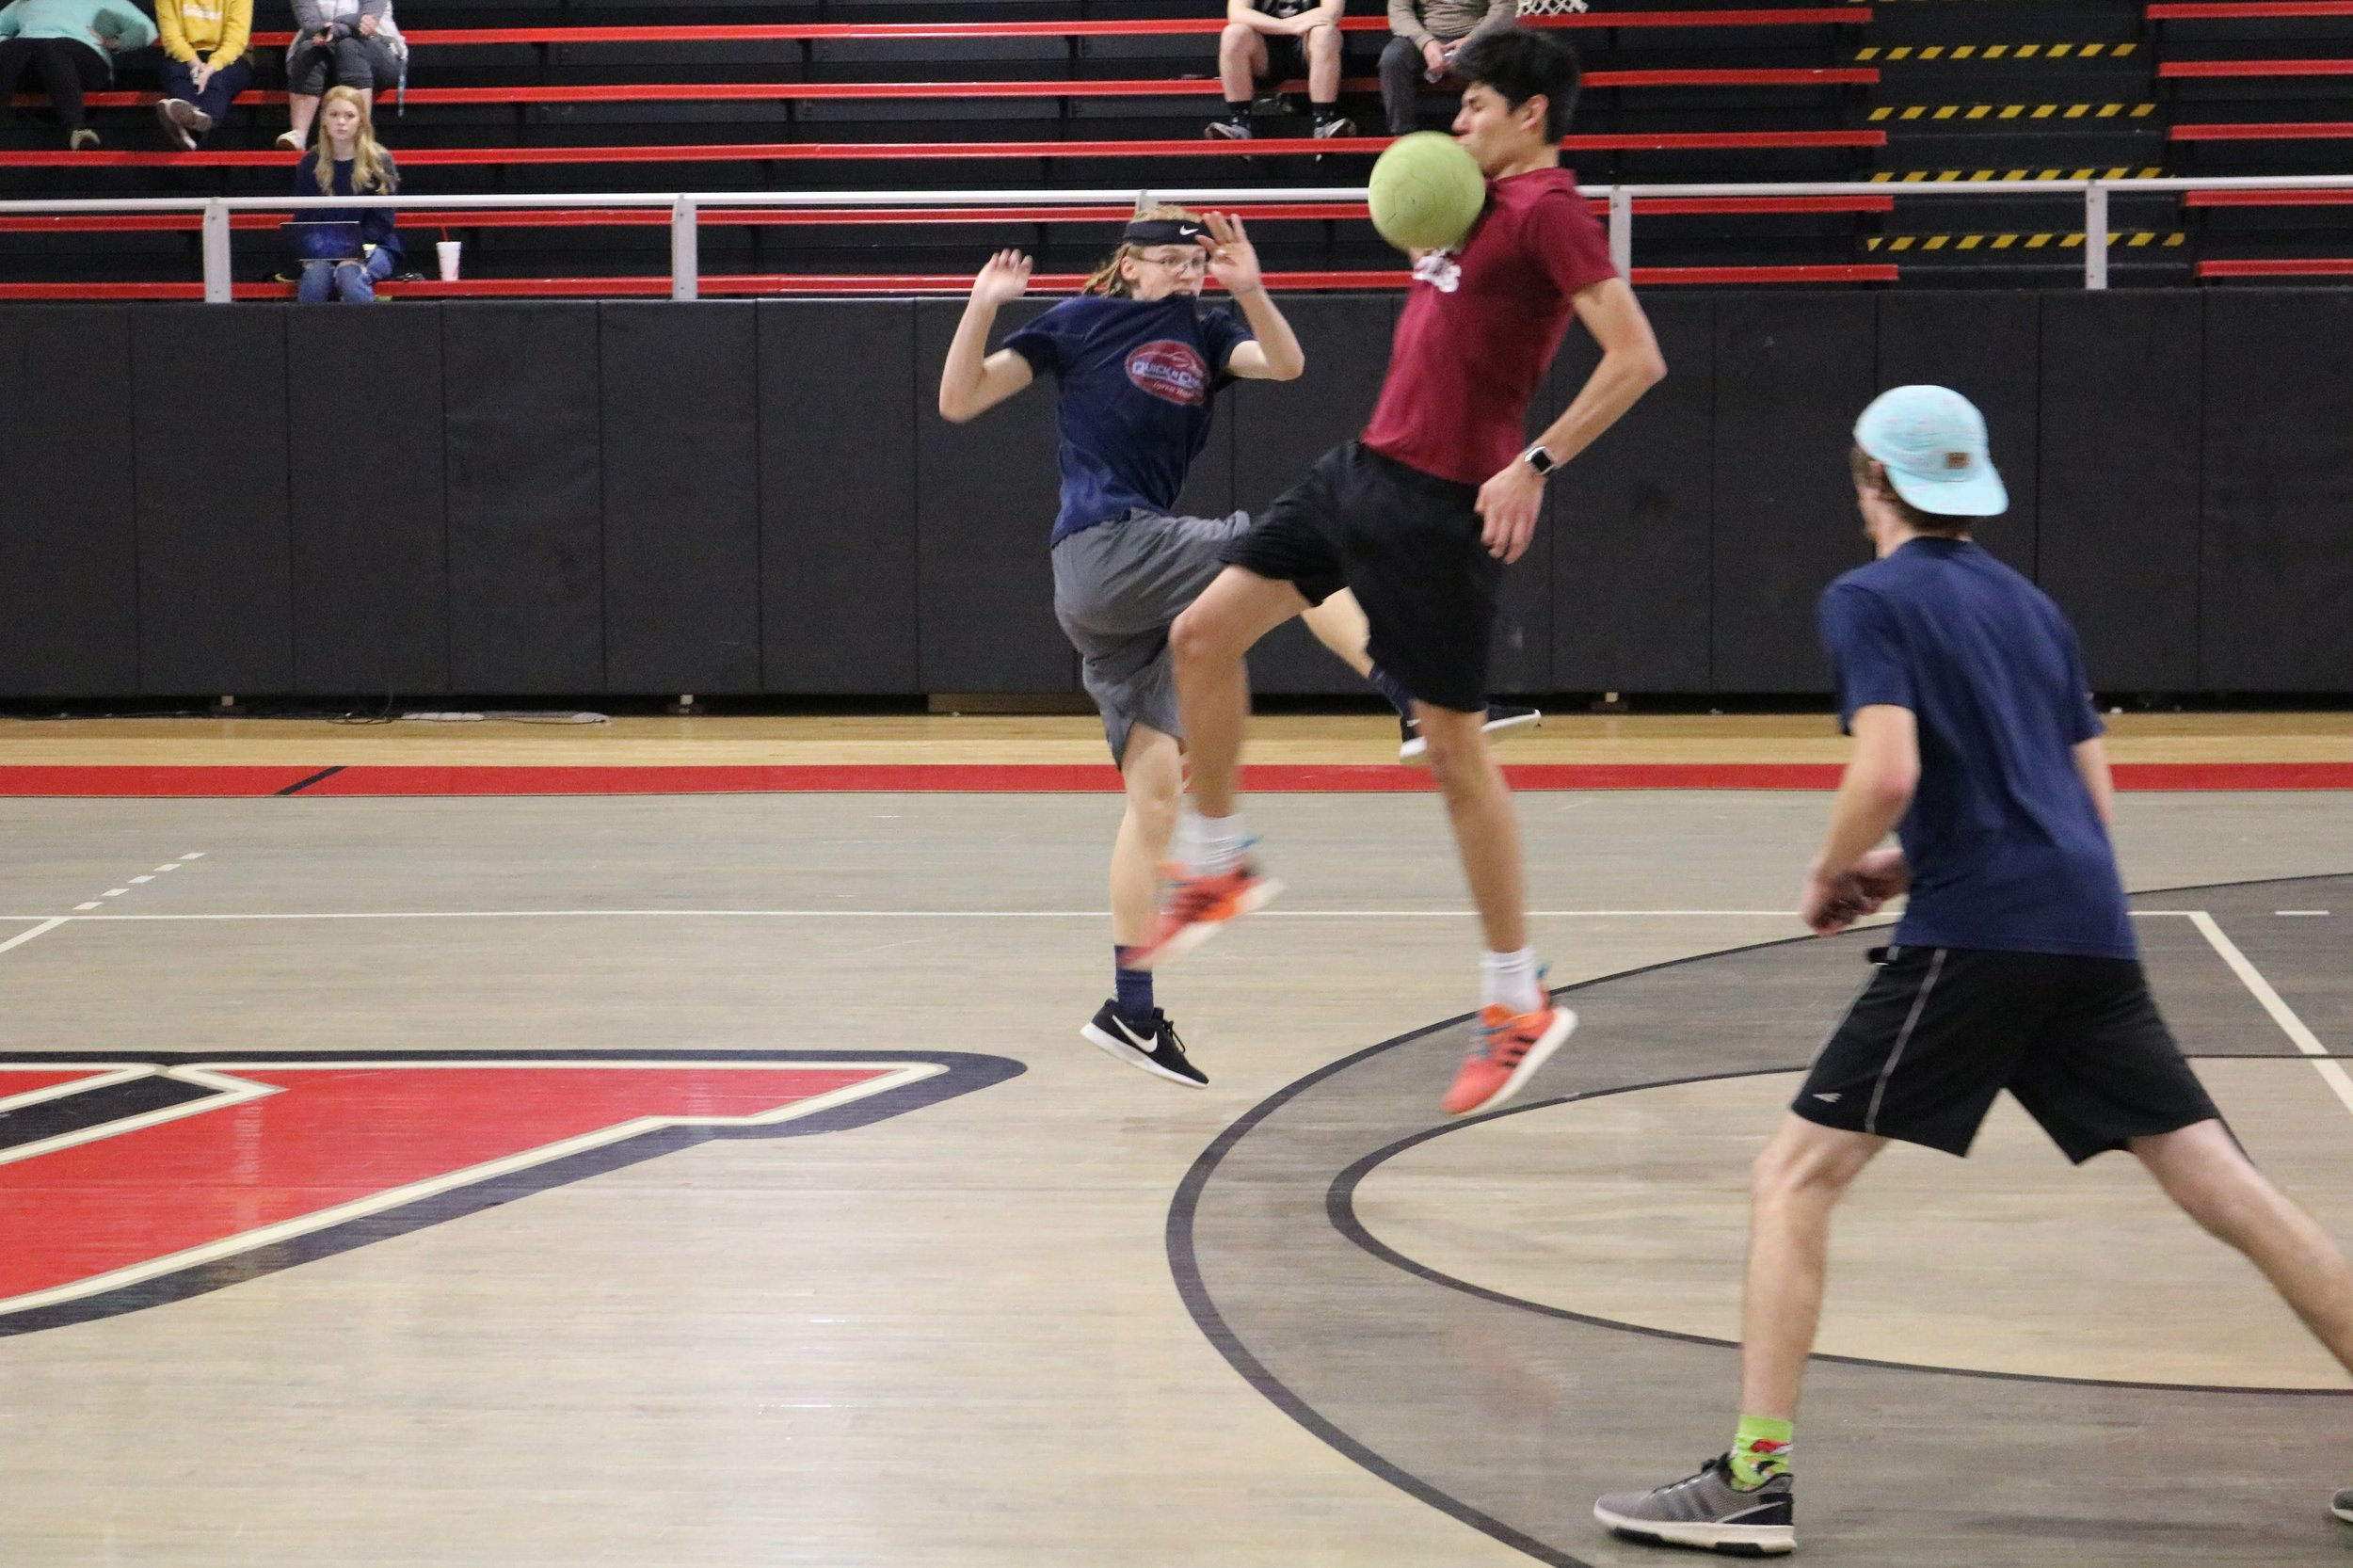 Freshman Shaun Forrester and Freshman Isaac Aliaga fight for control of the ball while Reynolds looks on to see if he can offer any assistance.